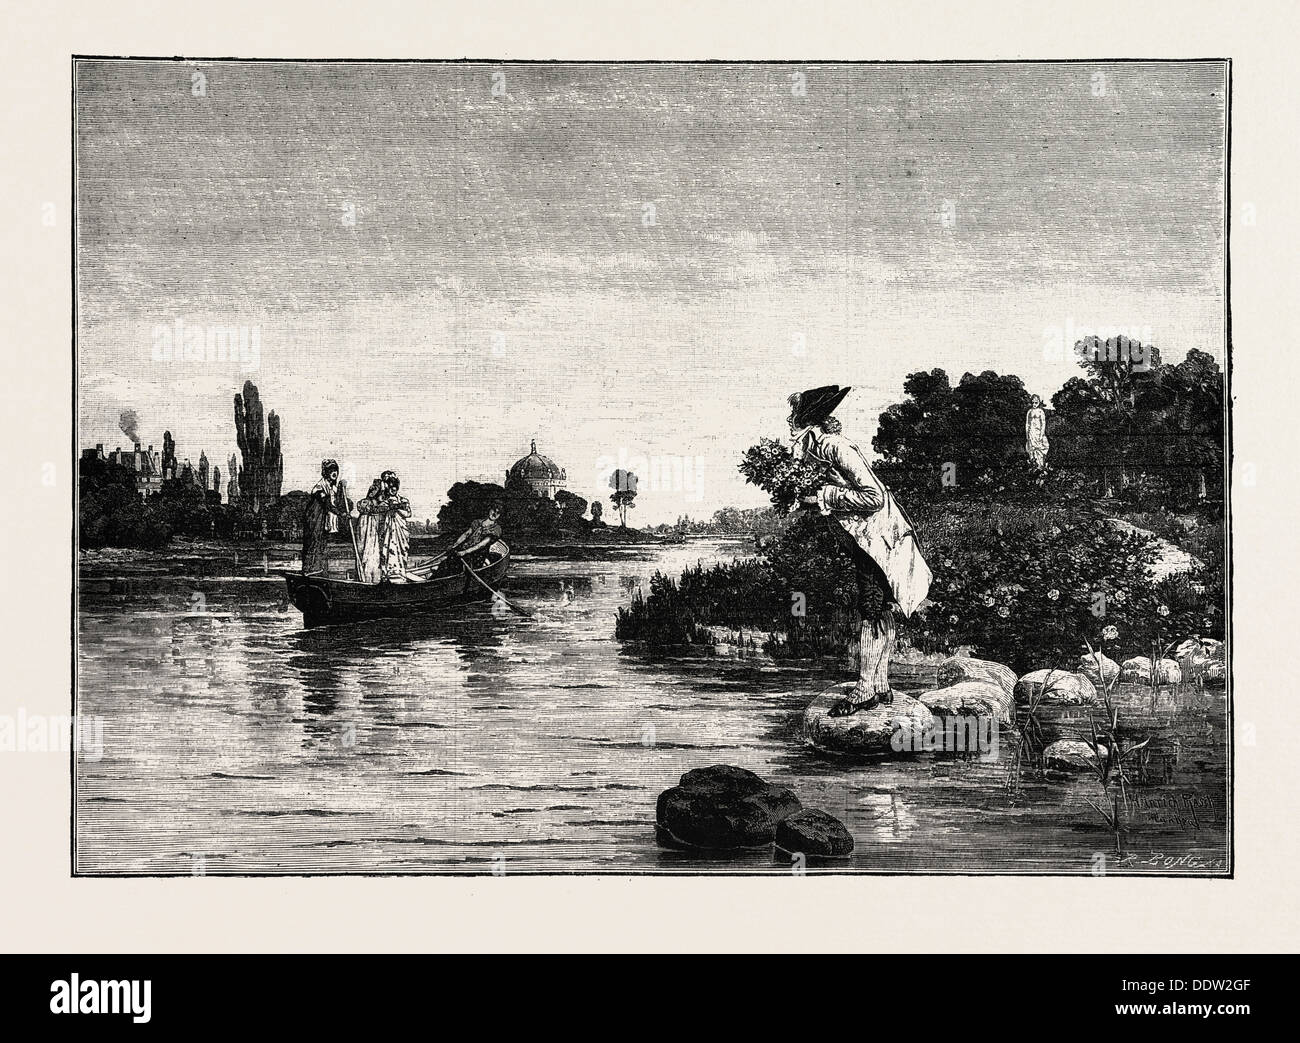 Abandoned, By Heinrich Rasch, ENGRAVING 1882 - Stock Image